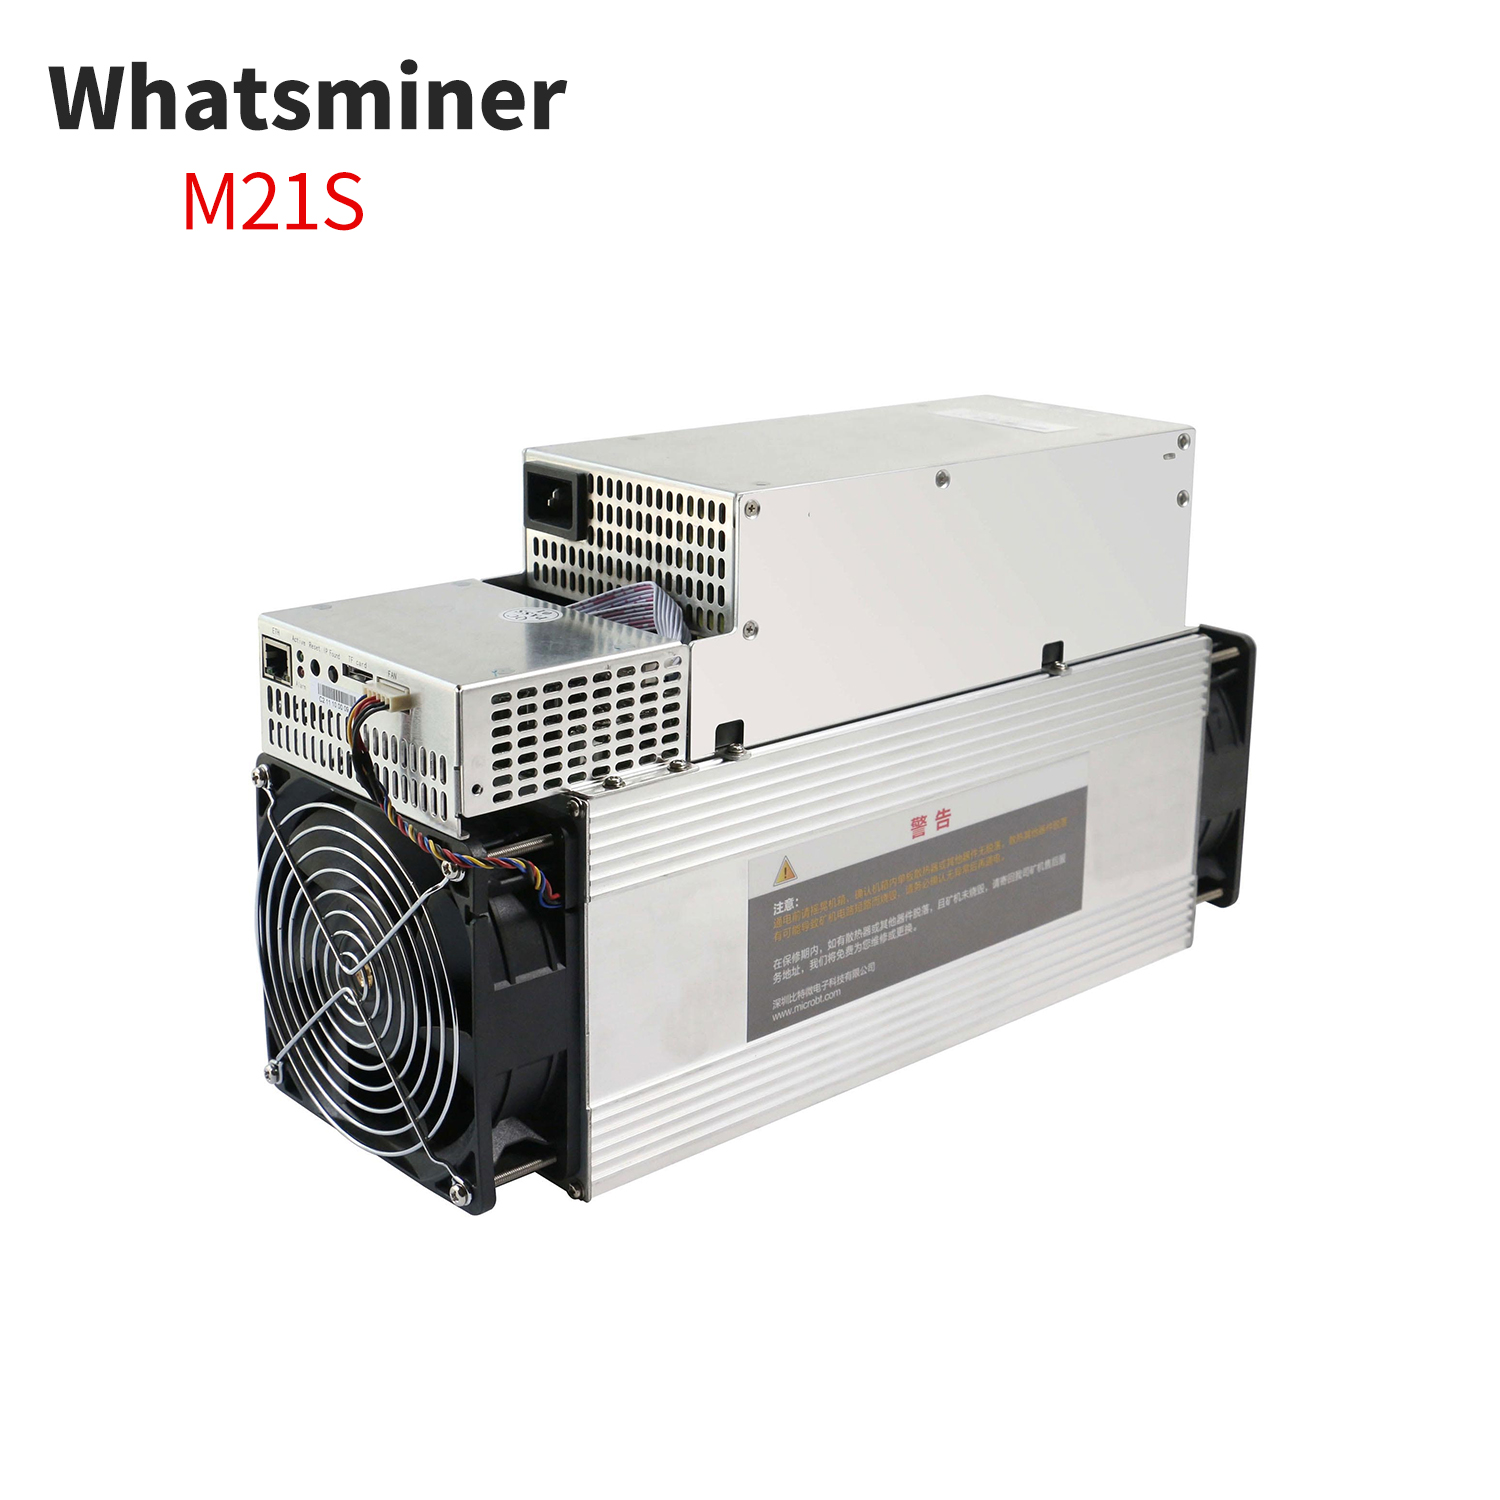 Exceedingly terrific asic miner 62T 3348W microbt whatsminer m21s bitcoin miner